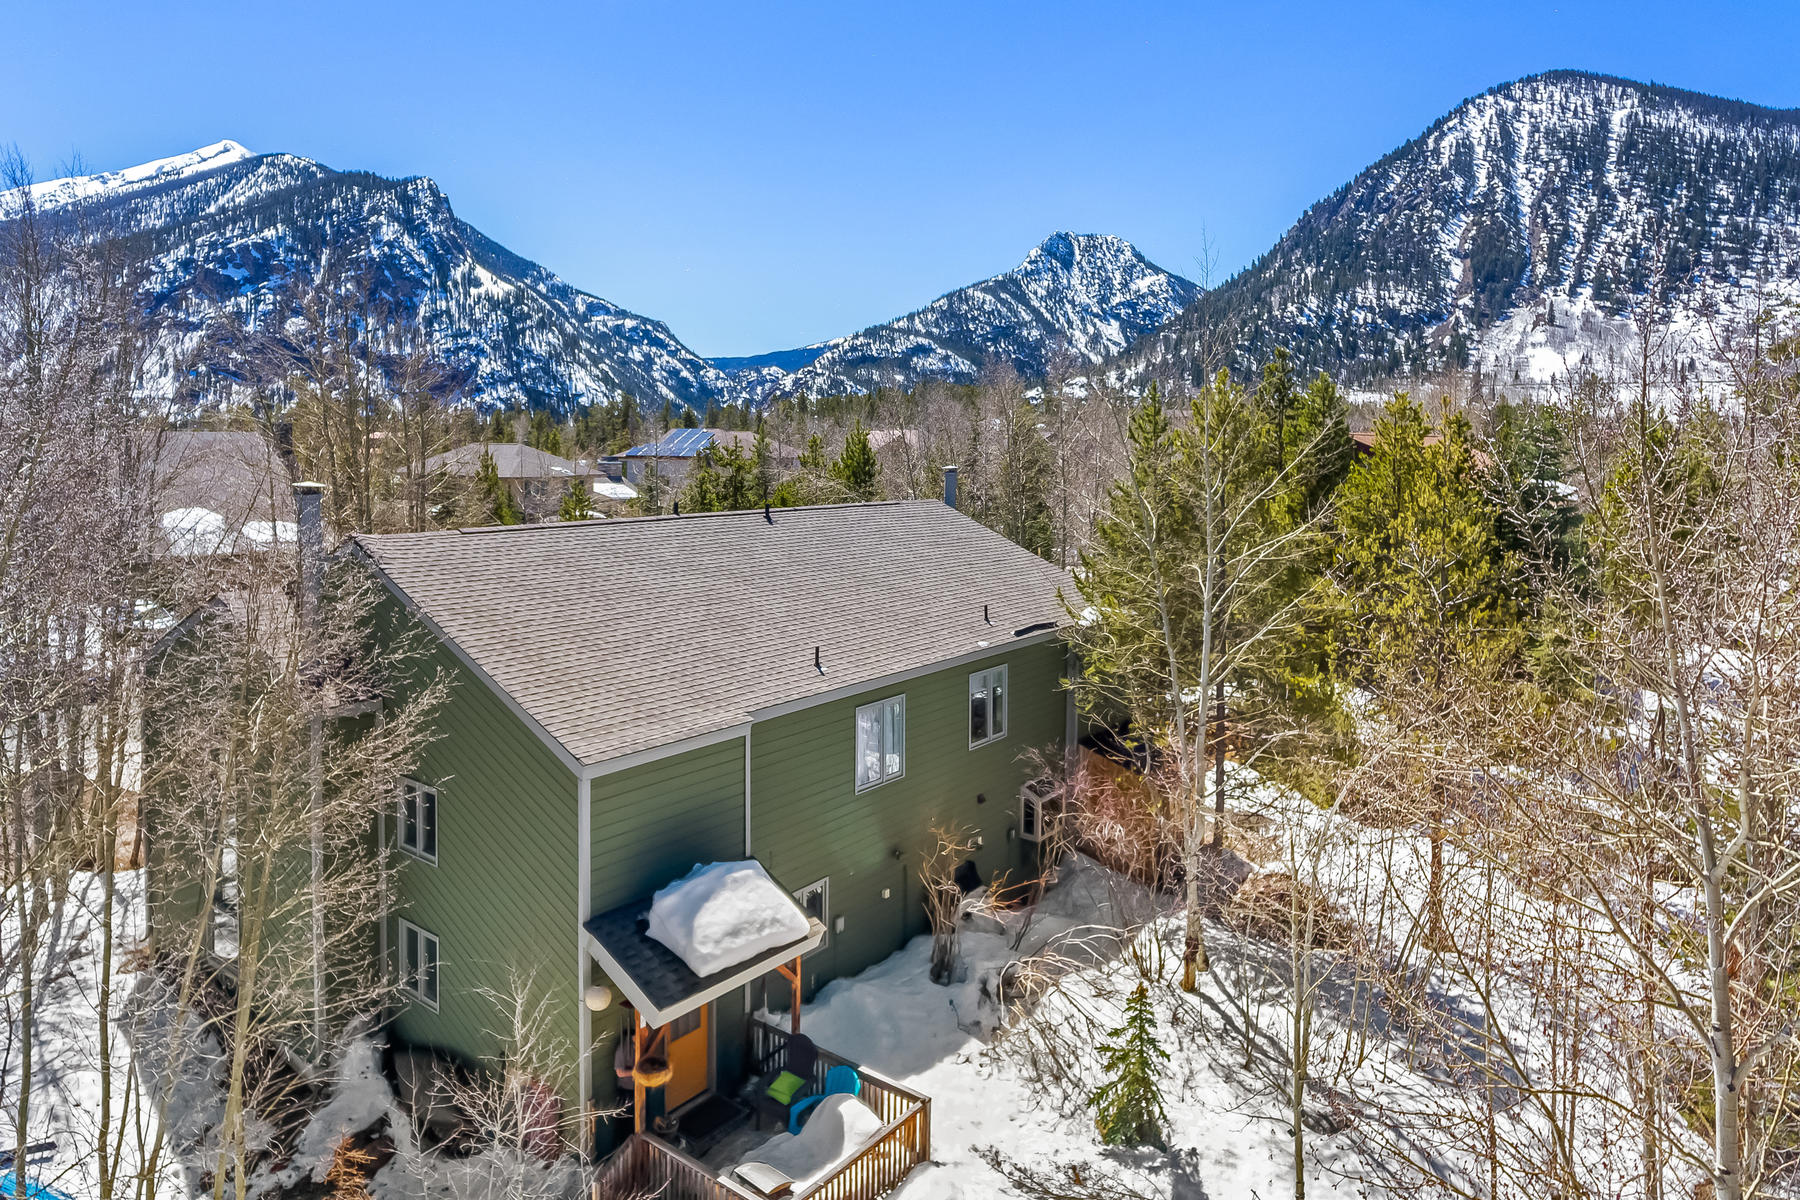 Duplex Homes for Sale at Meadow Creek Neighborhood Home 37 Hawn Drive Frisco, Colorado 80443 United States